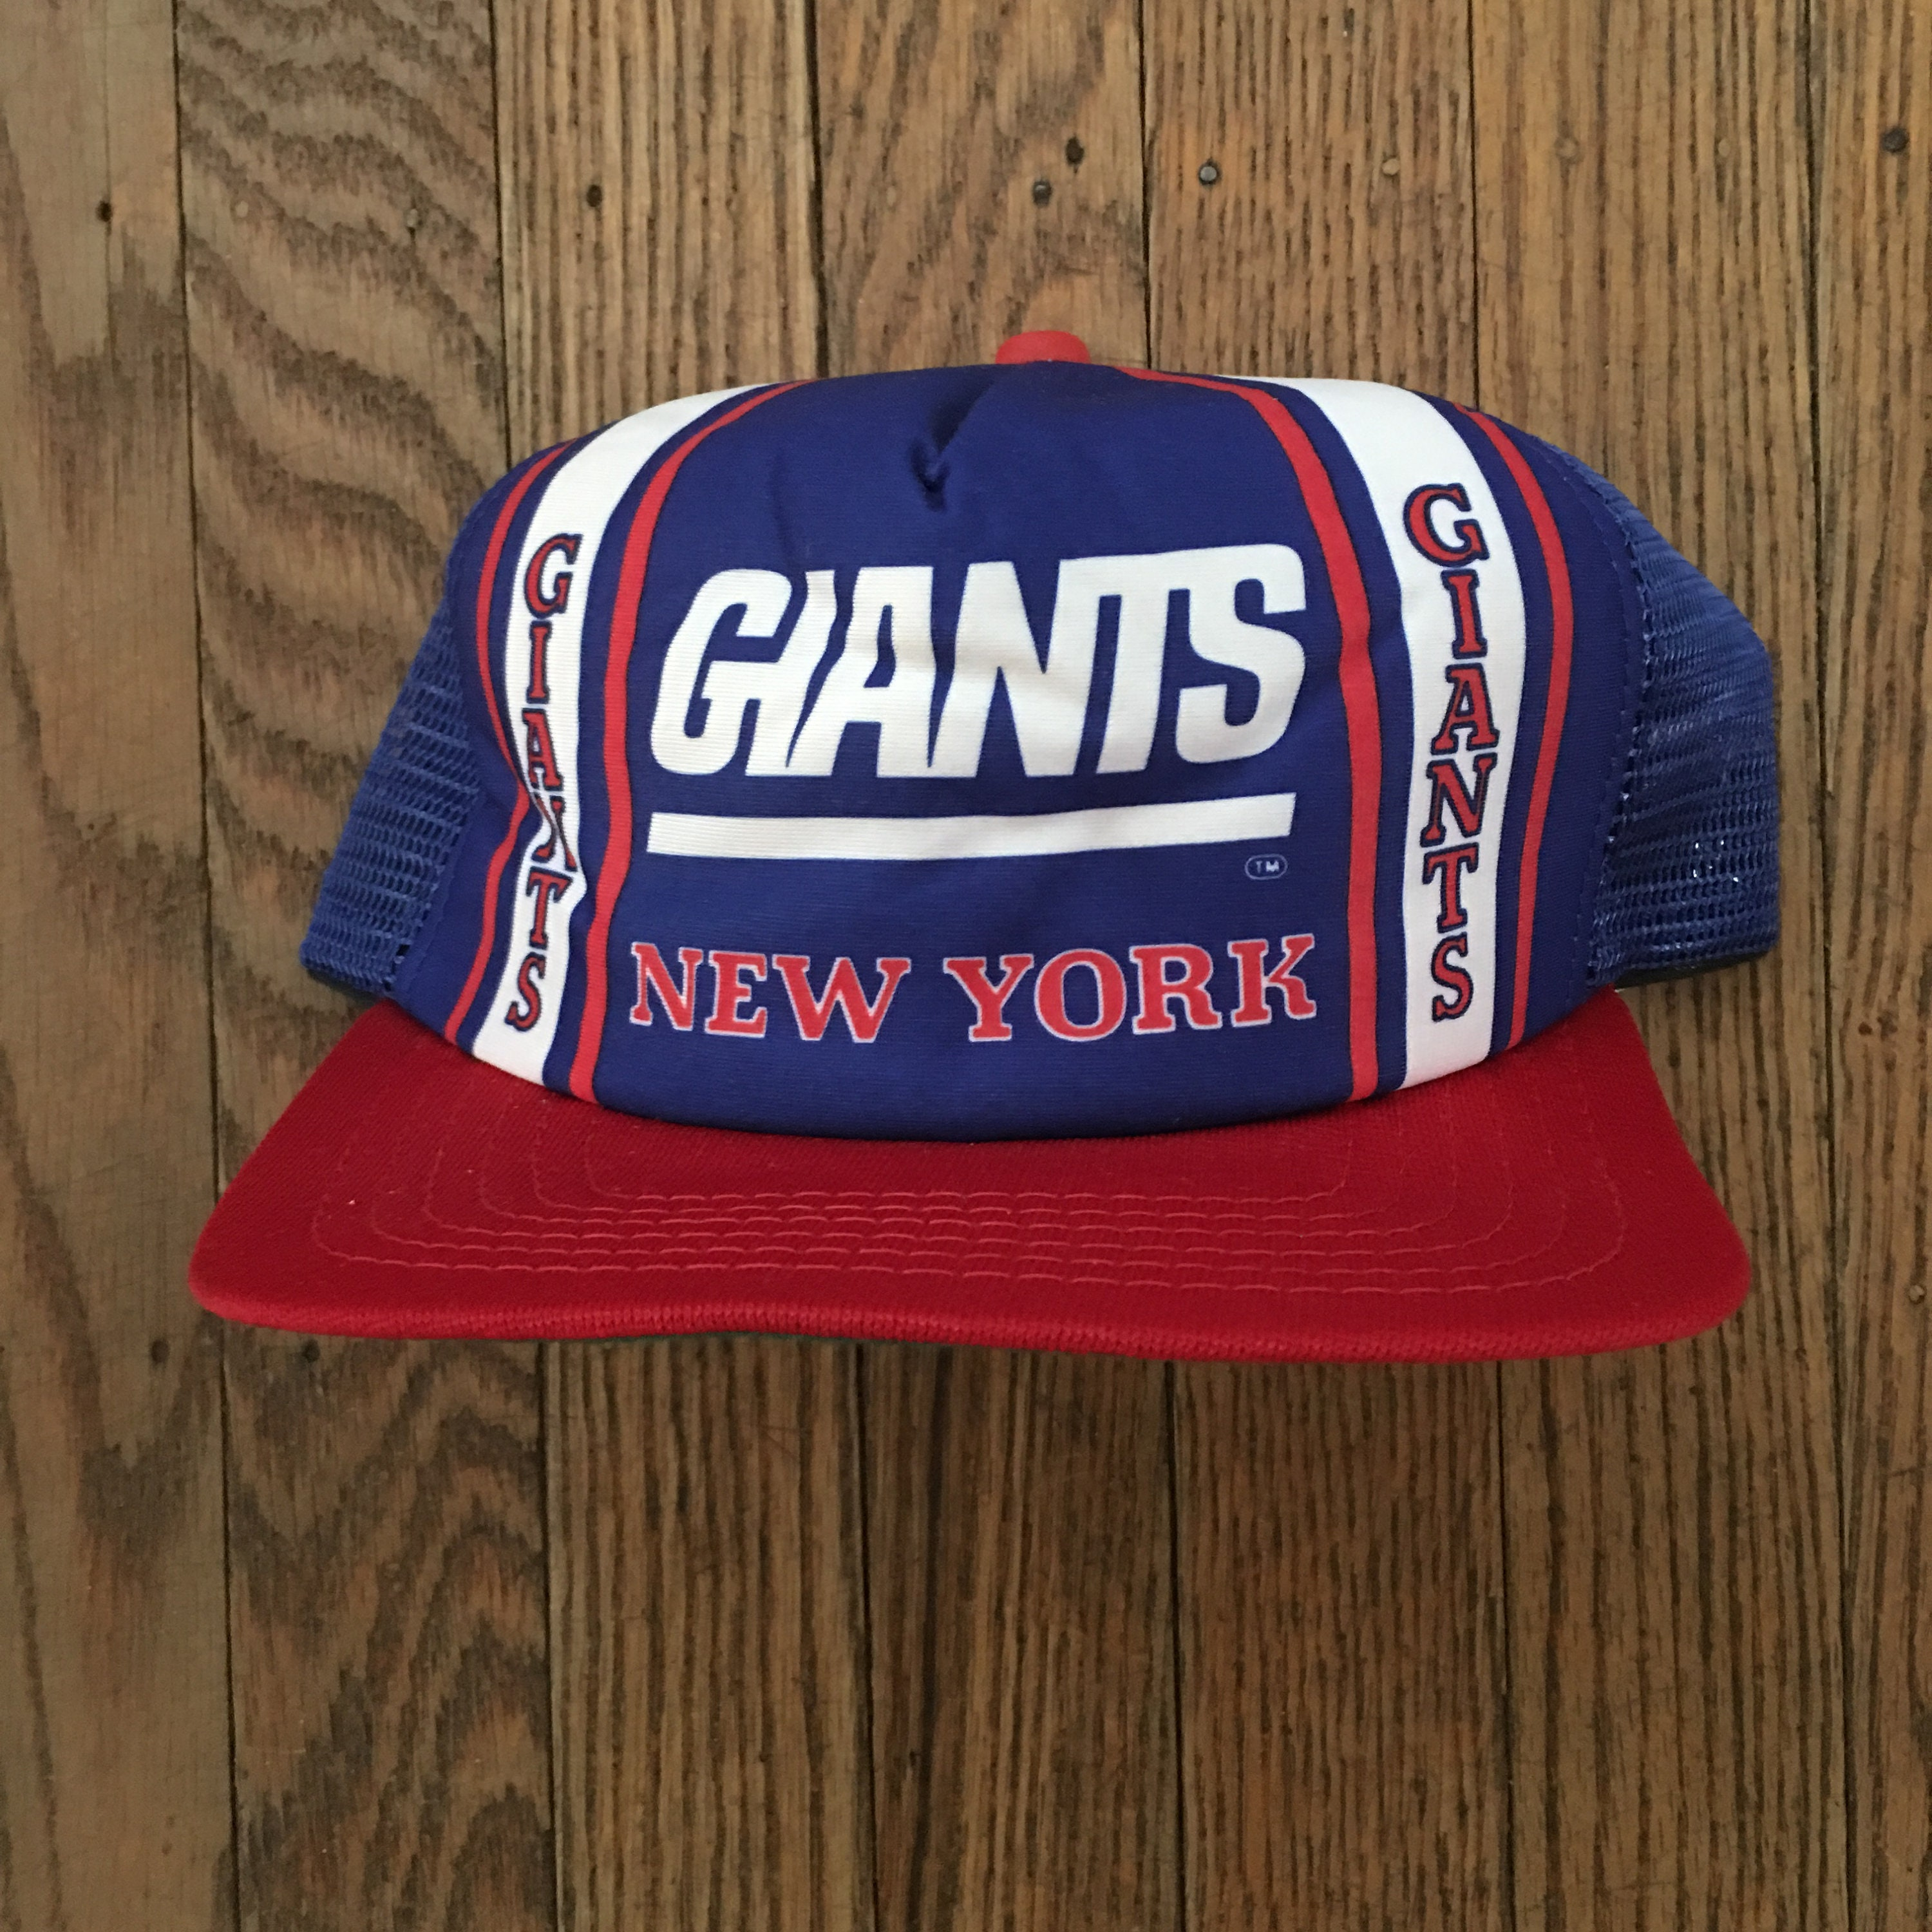 be3a6d33a Vintage 80s 90s Deadstock New York Giants New Era Pro Design